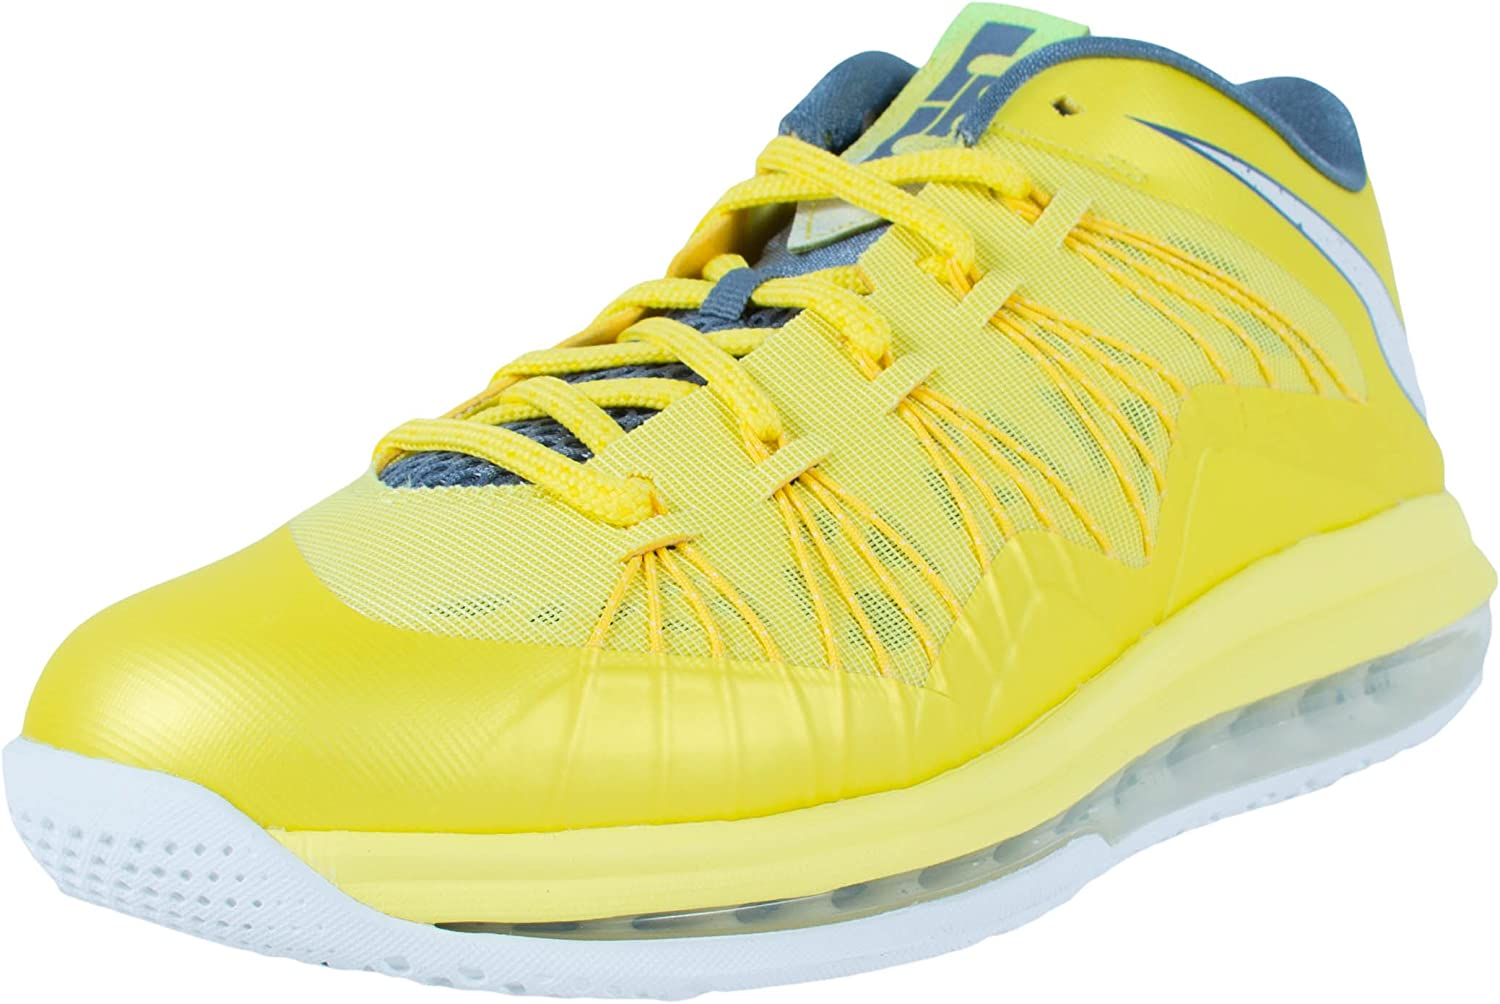 Air Max Lebron X Low Basketball Shoes